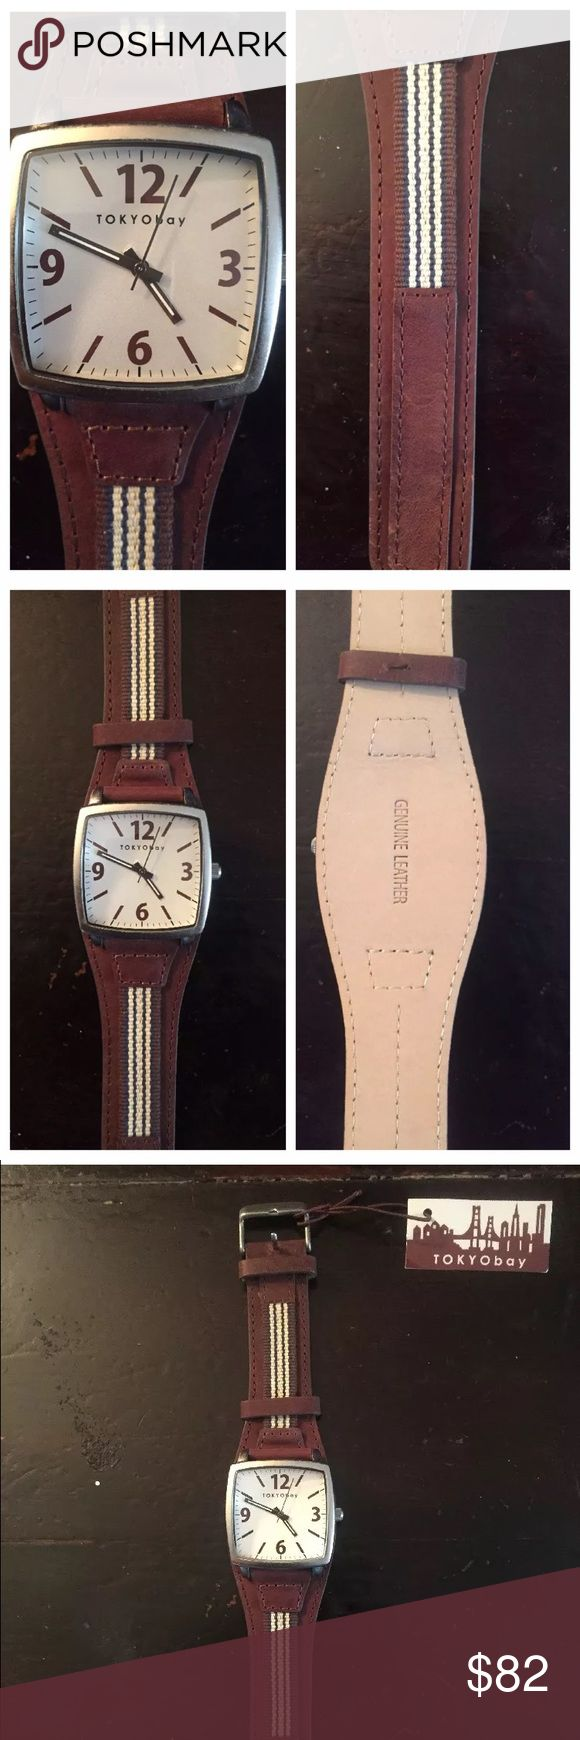 NWT Tokyo Bay Men's Watch. Quartz (battery) Men's watch by Tokyo Bay. Brand new with tags. Just needs a new battery. Tokyo Bay Accessories Watches